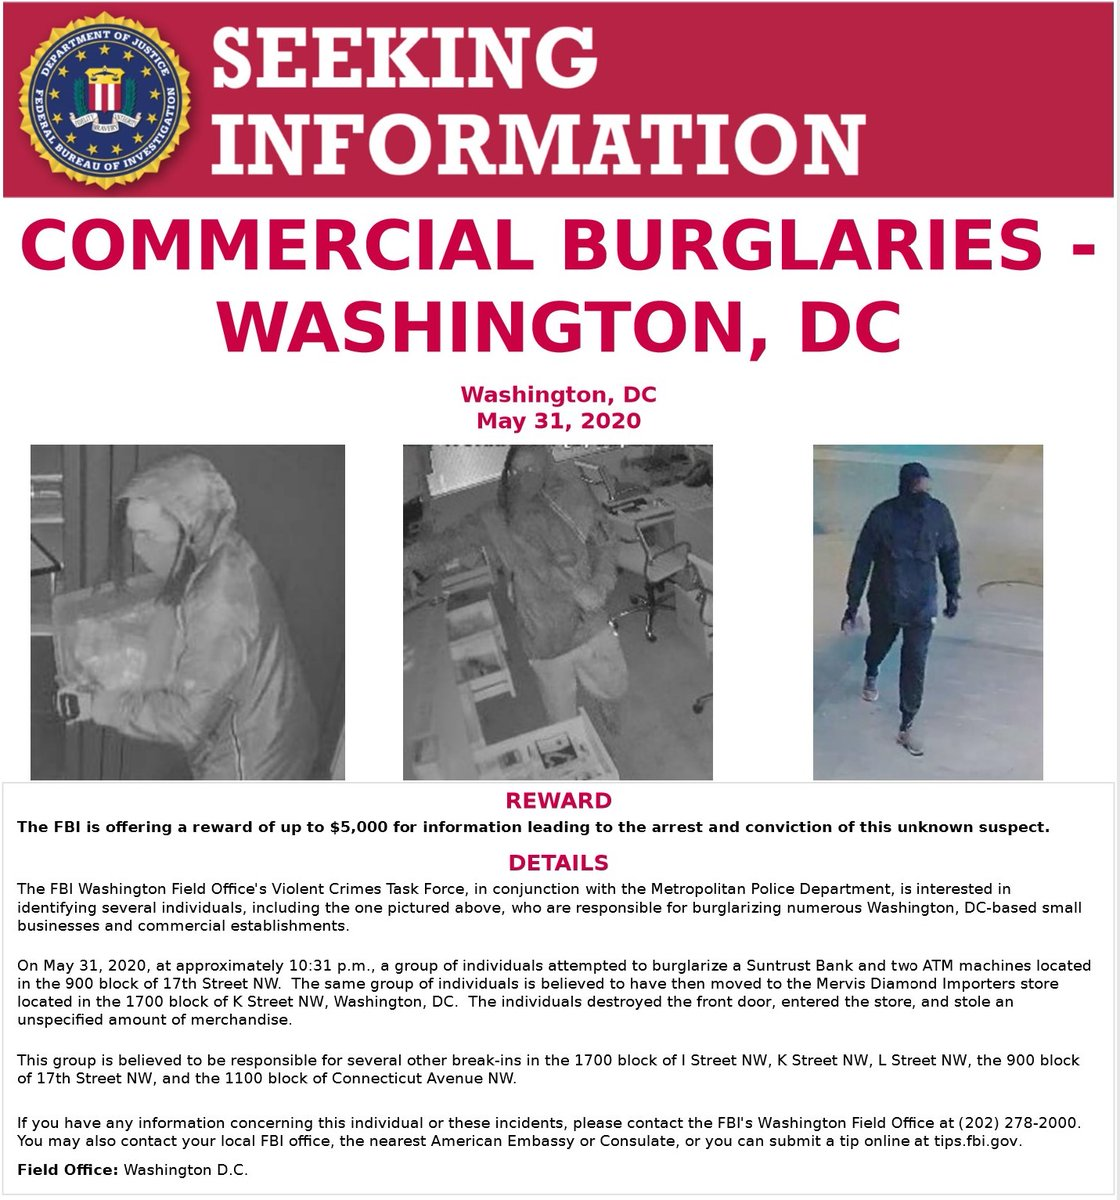 #FBIWFO is also offering a reward of up to $5K for info leading to the arrest & conviction of this unknown suspect, responsible for the same burglaries on the evening of May 31st. If you have info on either individual, call #FBI at 202-278-2000. #Wanted